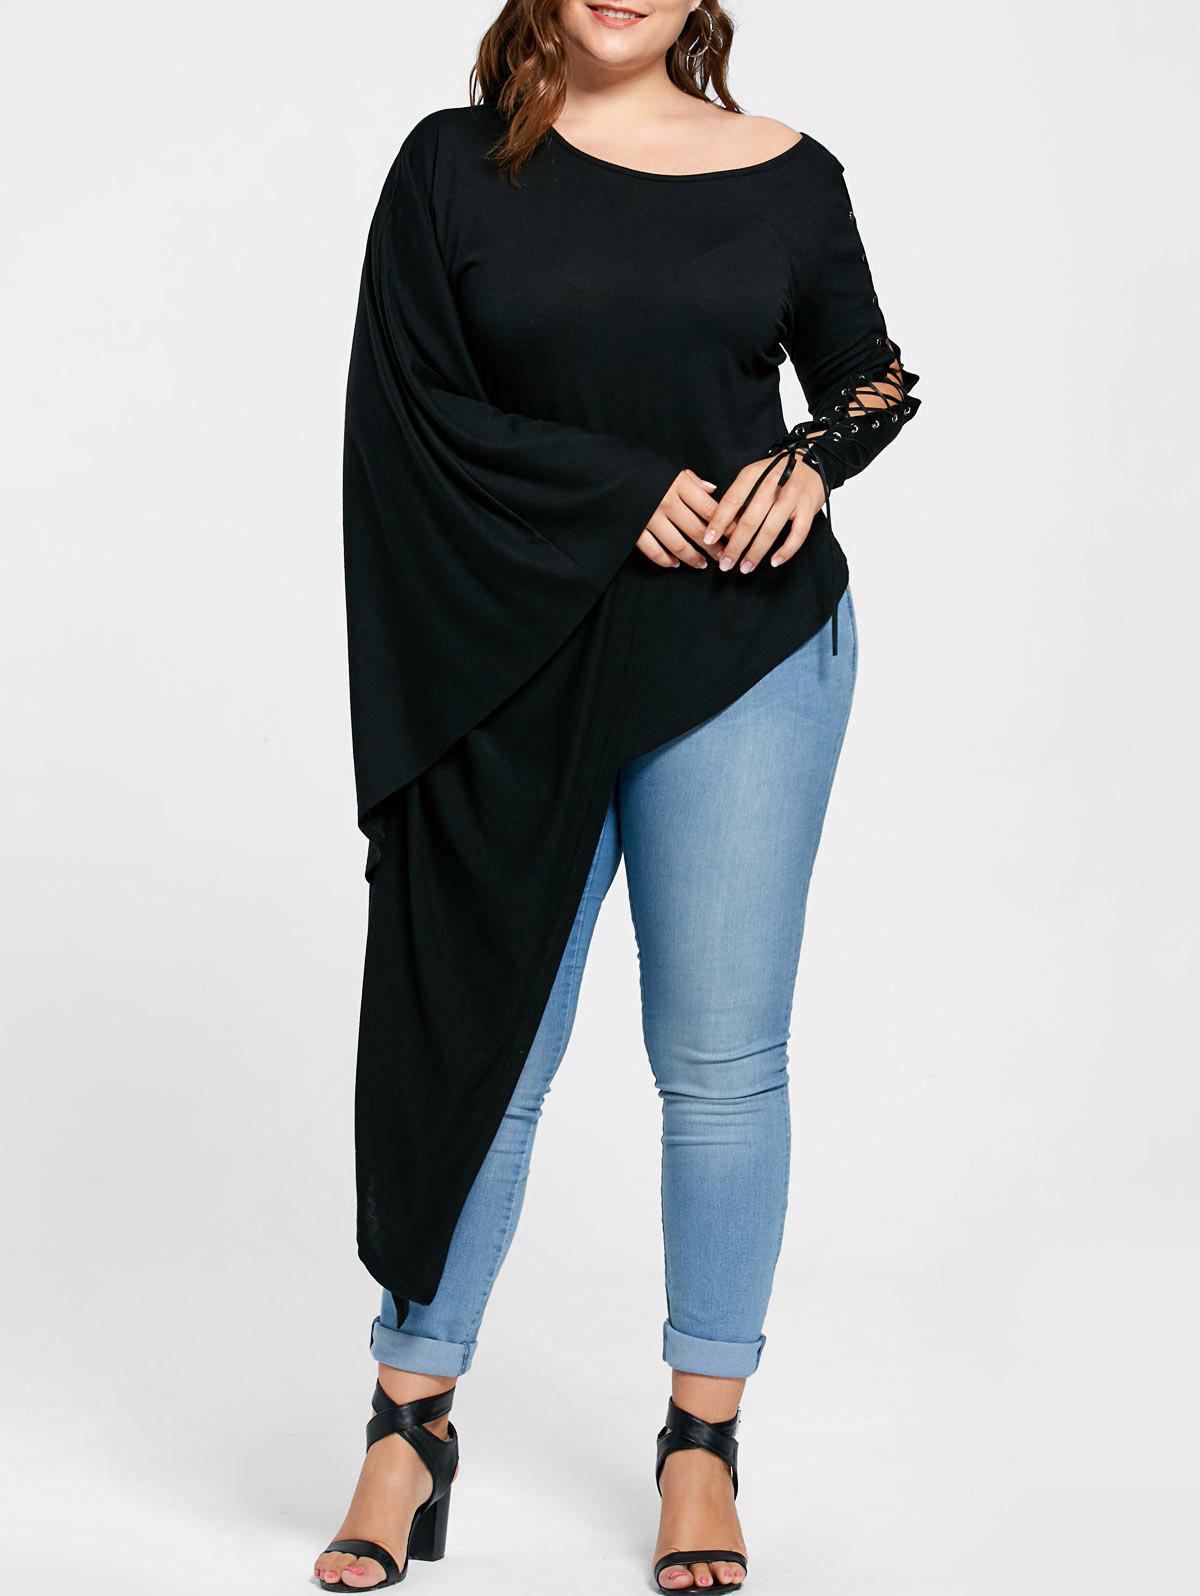 Plus Size Lace Up Batwing Sleeve Asymmetric TopWOMEN<br><br>Size: 4XL; Color: BLACK; Material: Polyester,Spandex; Shirt Length: Long; Sleeve Length: Full; Collar: Scoop Neck; Style: Novelty; Season: Fall,Spring,Summer; Pattern Type: Solid; Weight: 0.4000kg; Package Contents: 1 x T-shirt;